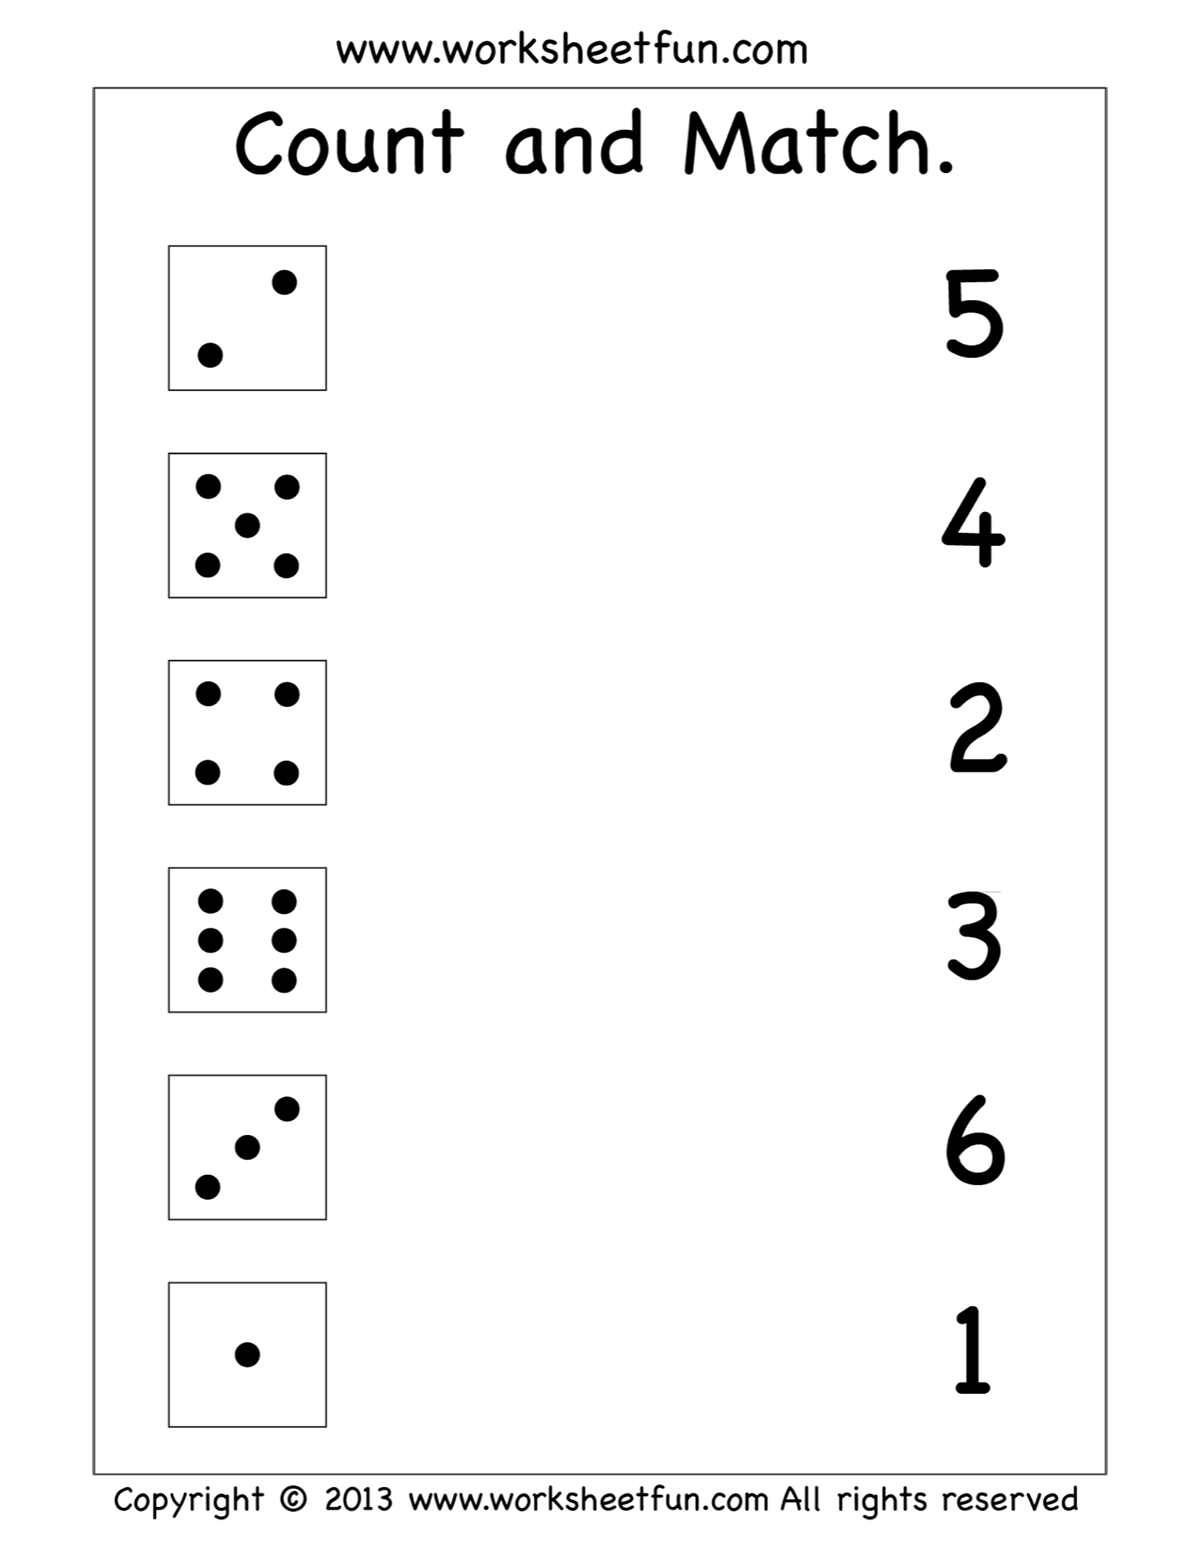 hight resolution of Count and match worksheet   Printable preschool worksheets